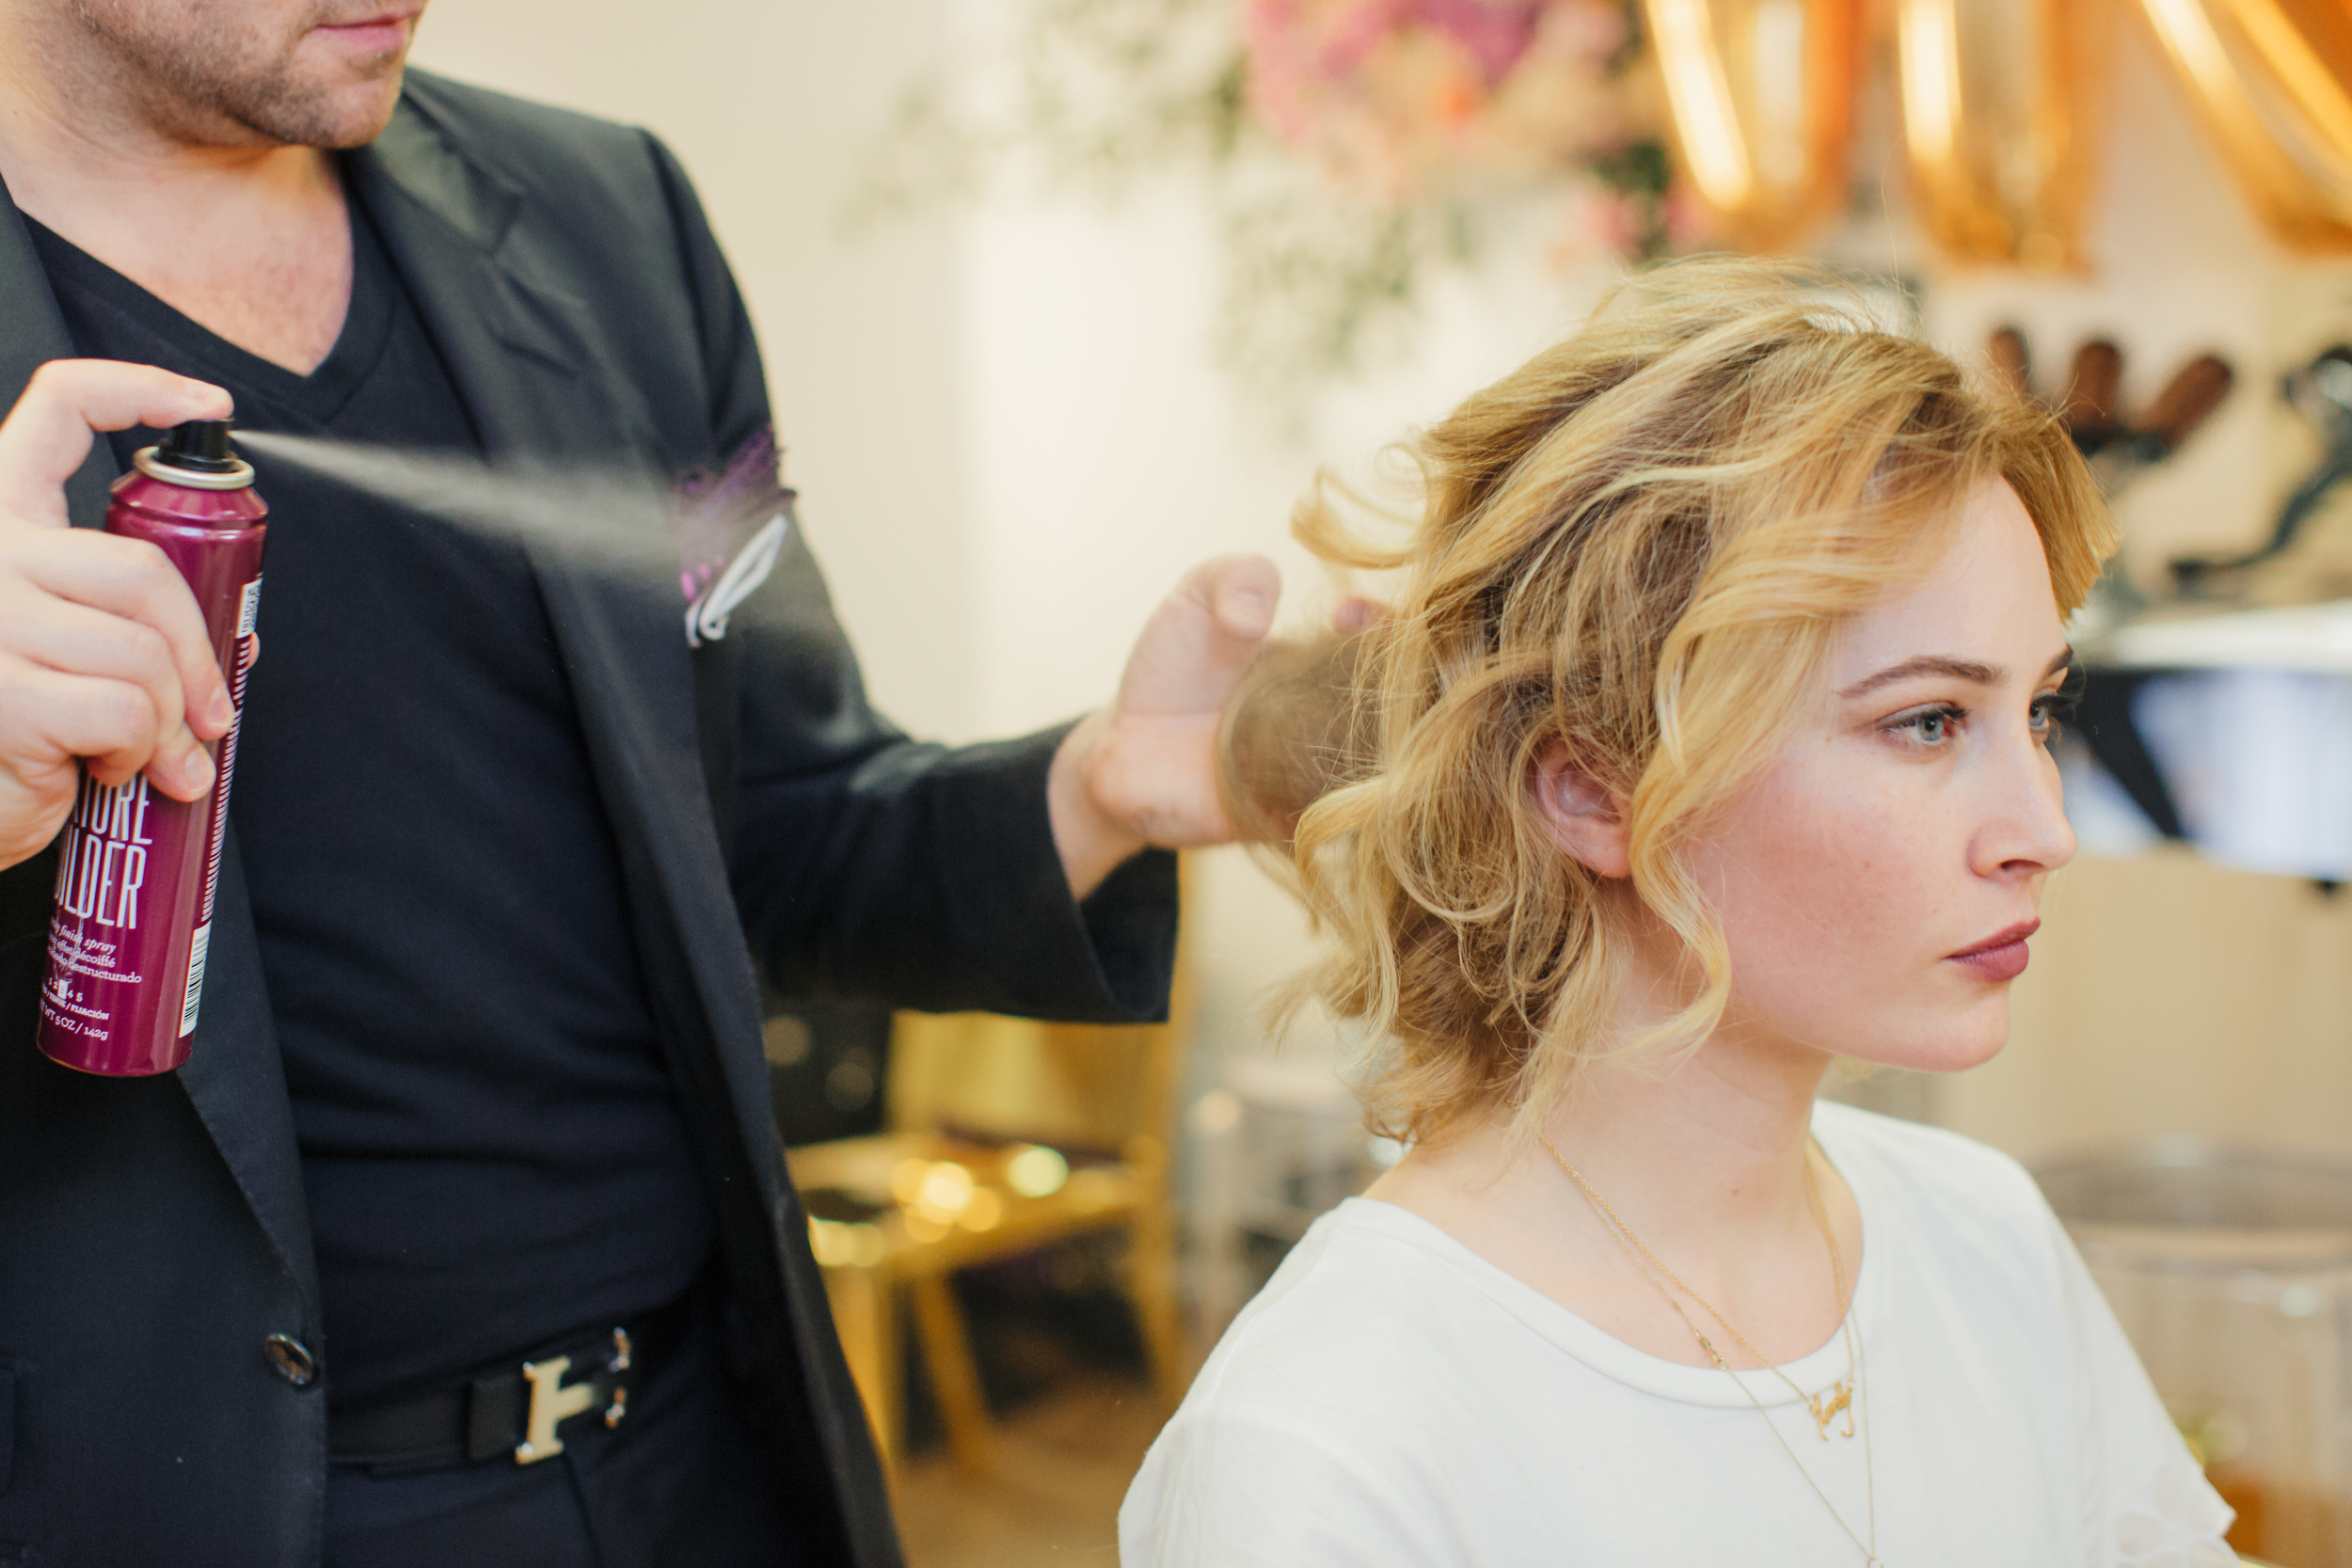 After you have finished curling, add  Matrix StyleLink Texture Builder about four to five inches away from the roots.